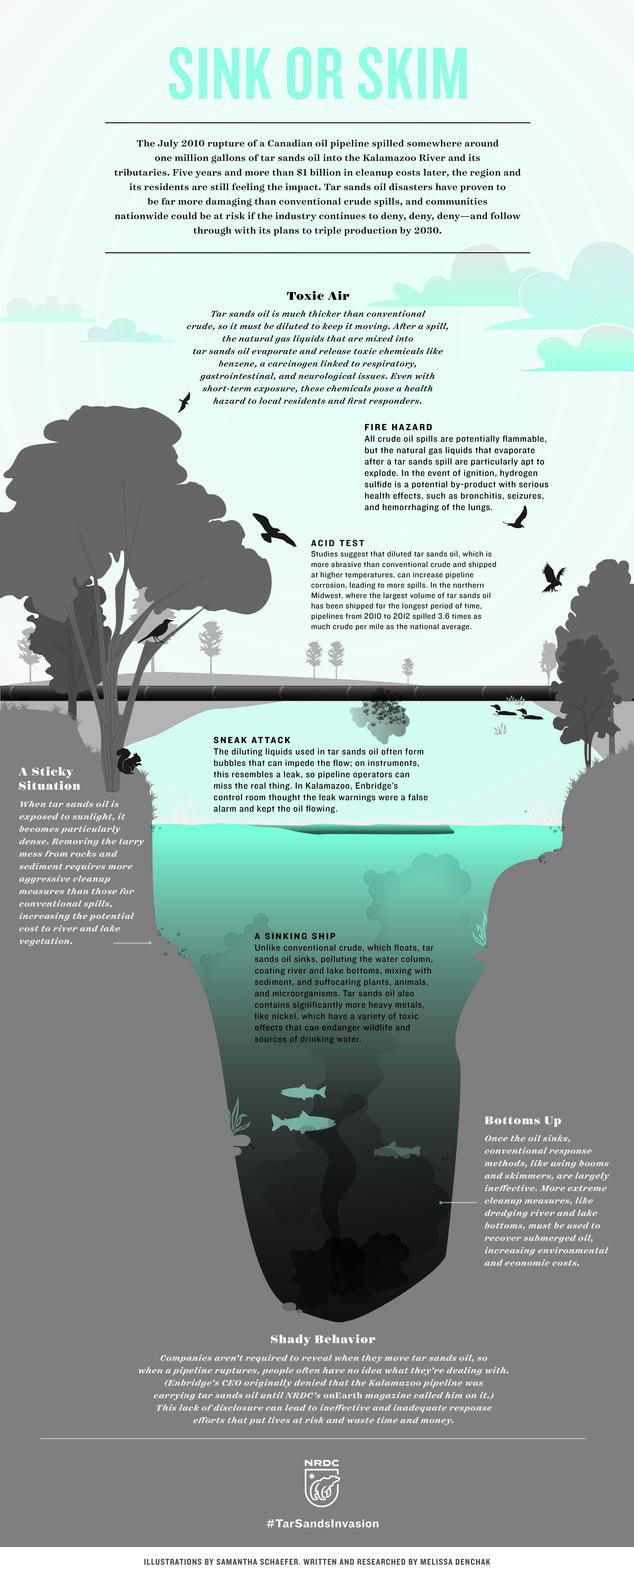 tar sands oil spill impacts infographic